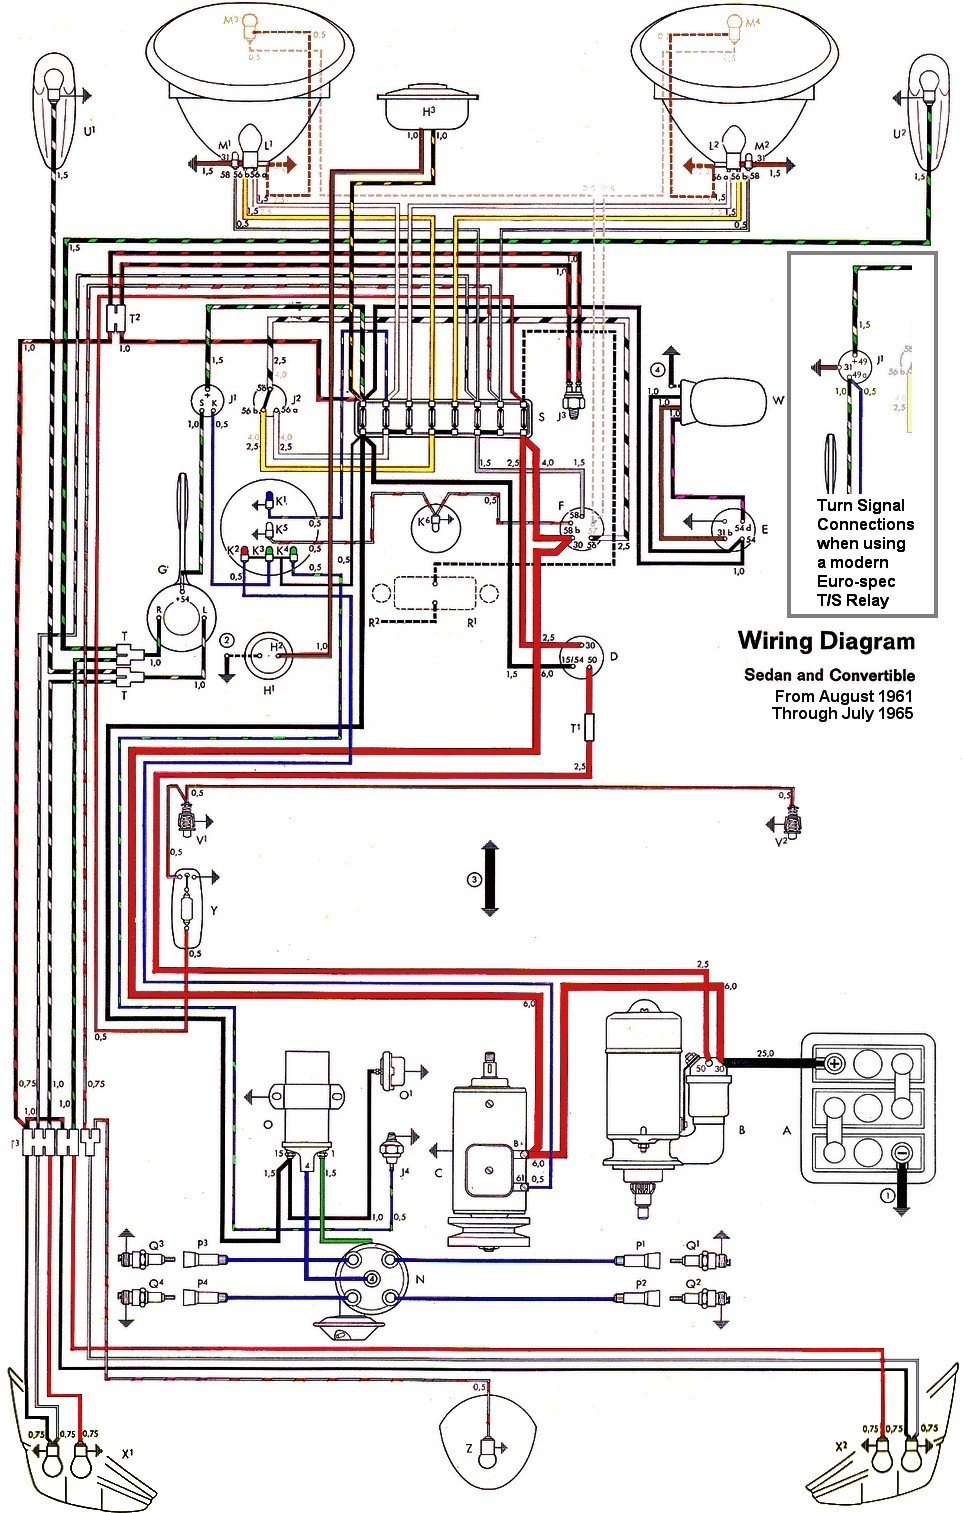 bug_62 65withinset thesamba com type 1 wiring diagrams vw beetle wiring diagram at creativeand.co